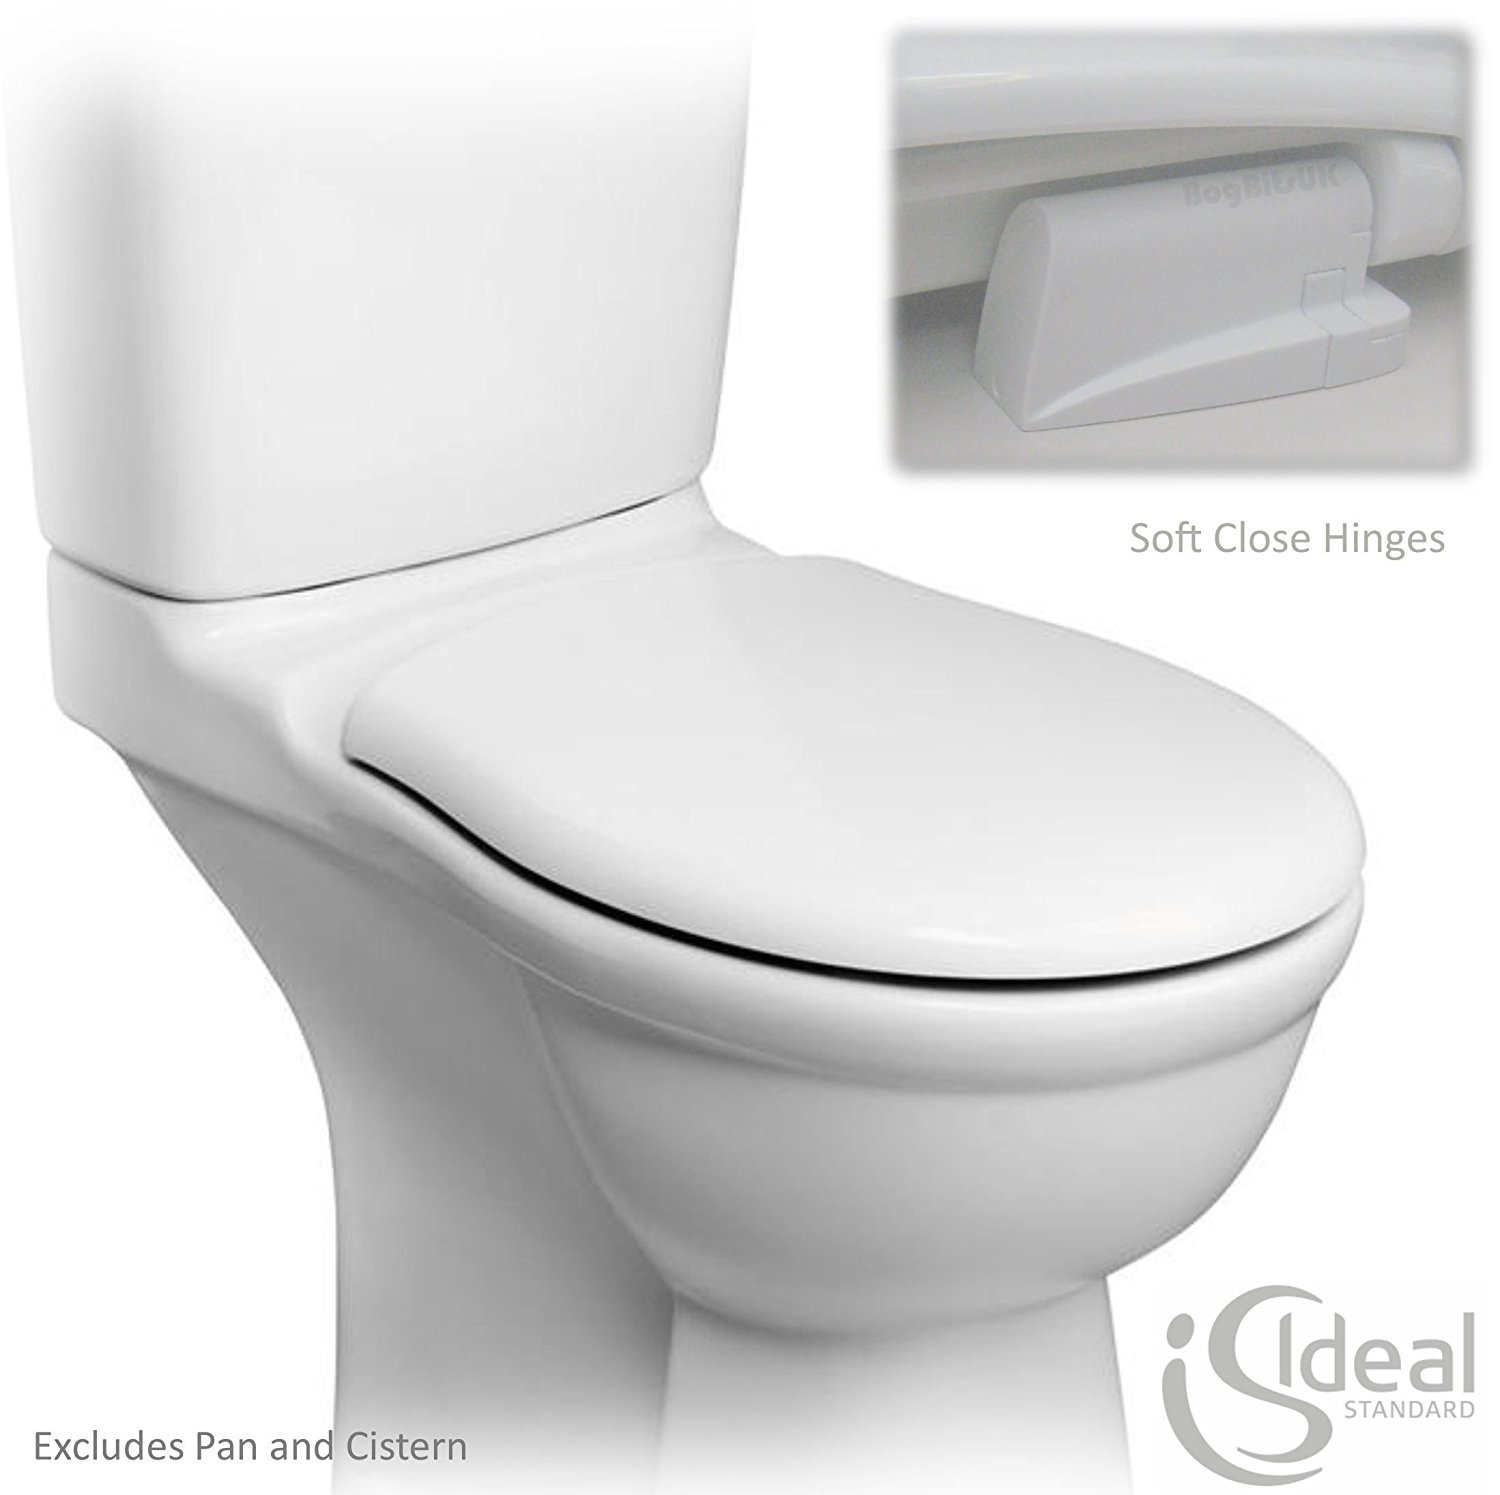 Ideal Standard Alto Soft Close Toilet Seat (E759401): Amazon.co.uk ...